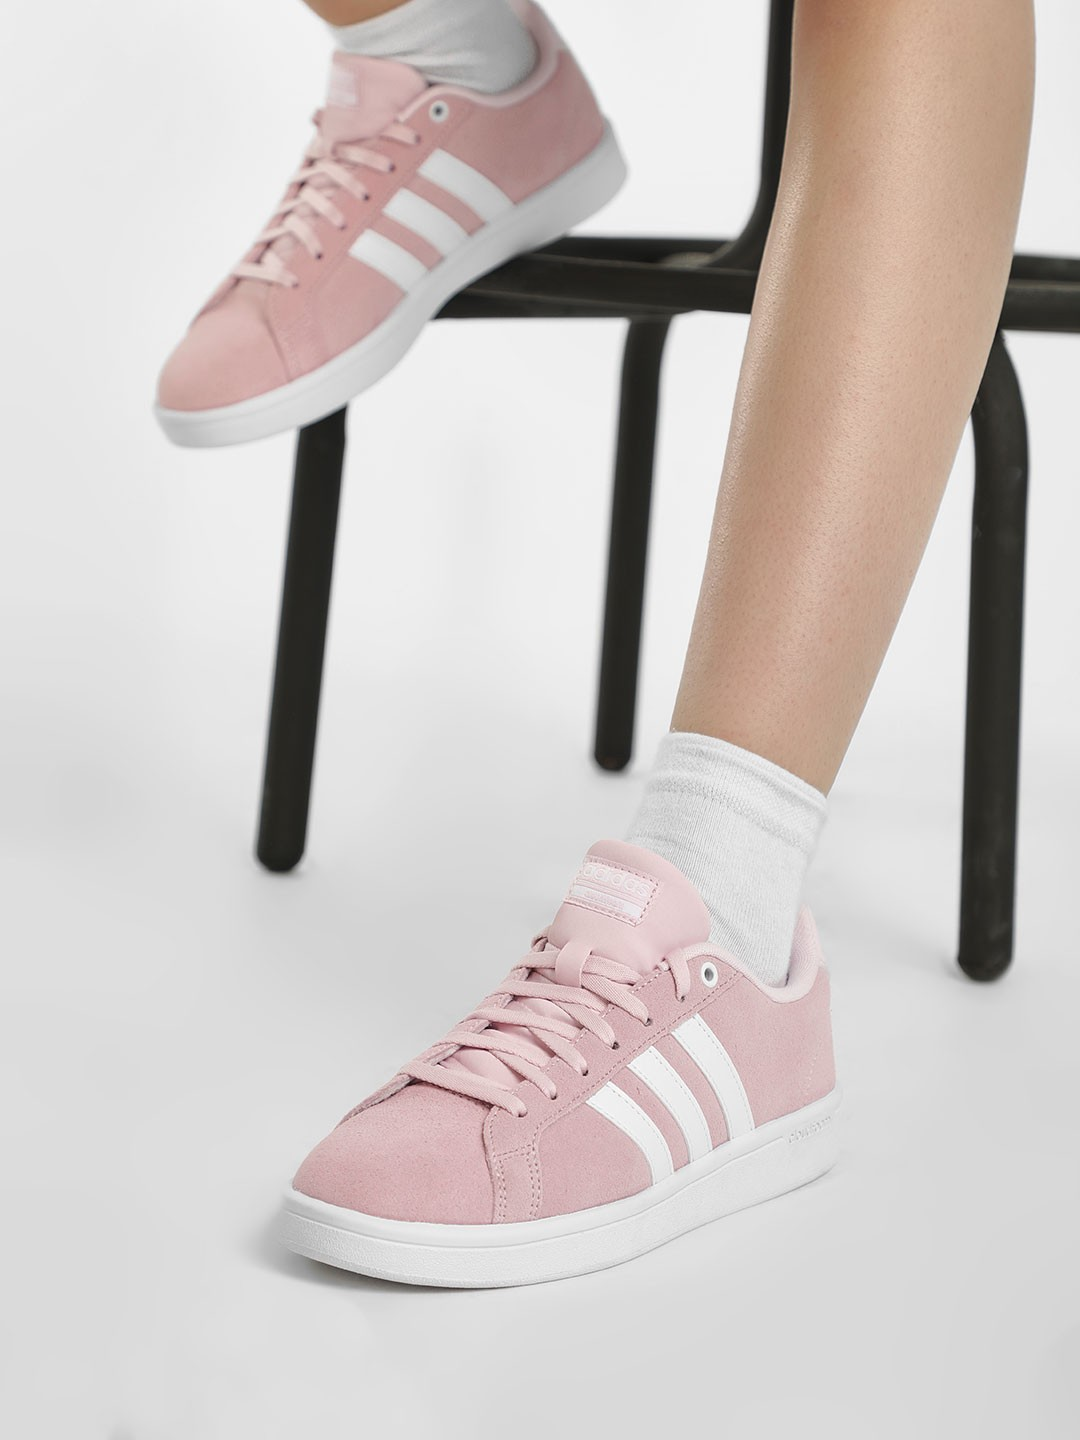 Adidas Pink Cloudfoam Advantage Shoes 1